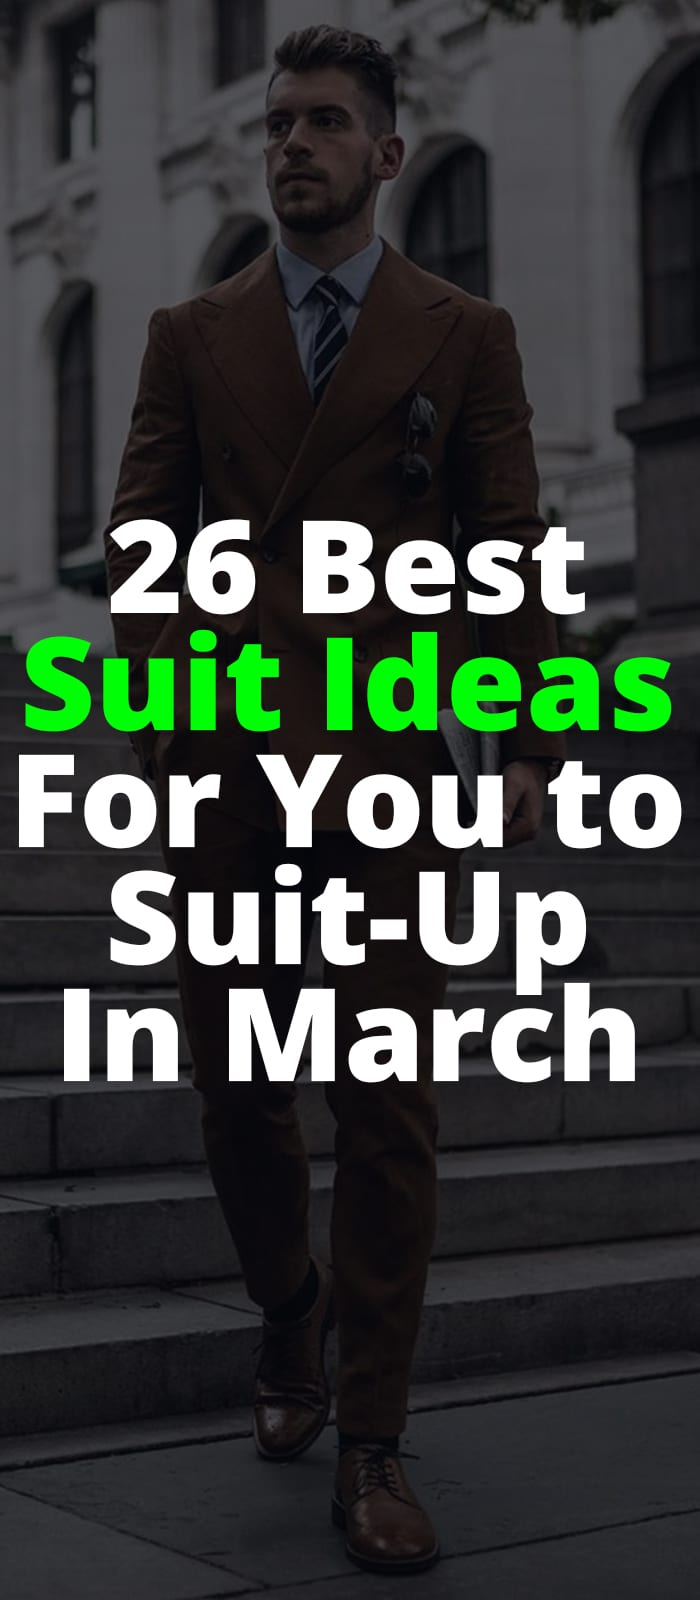 26 Best Suit Ideas for you to Suit Up